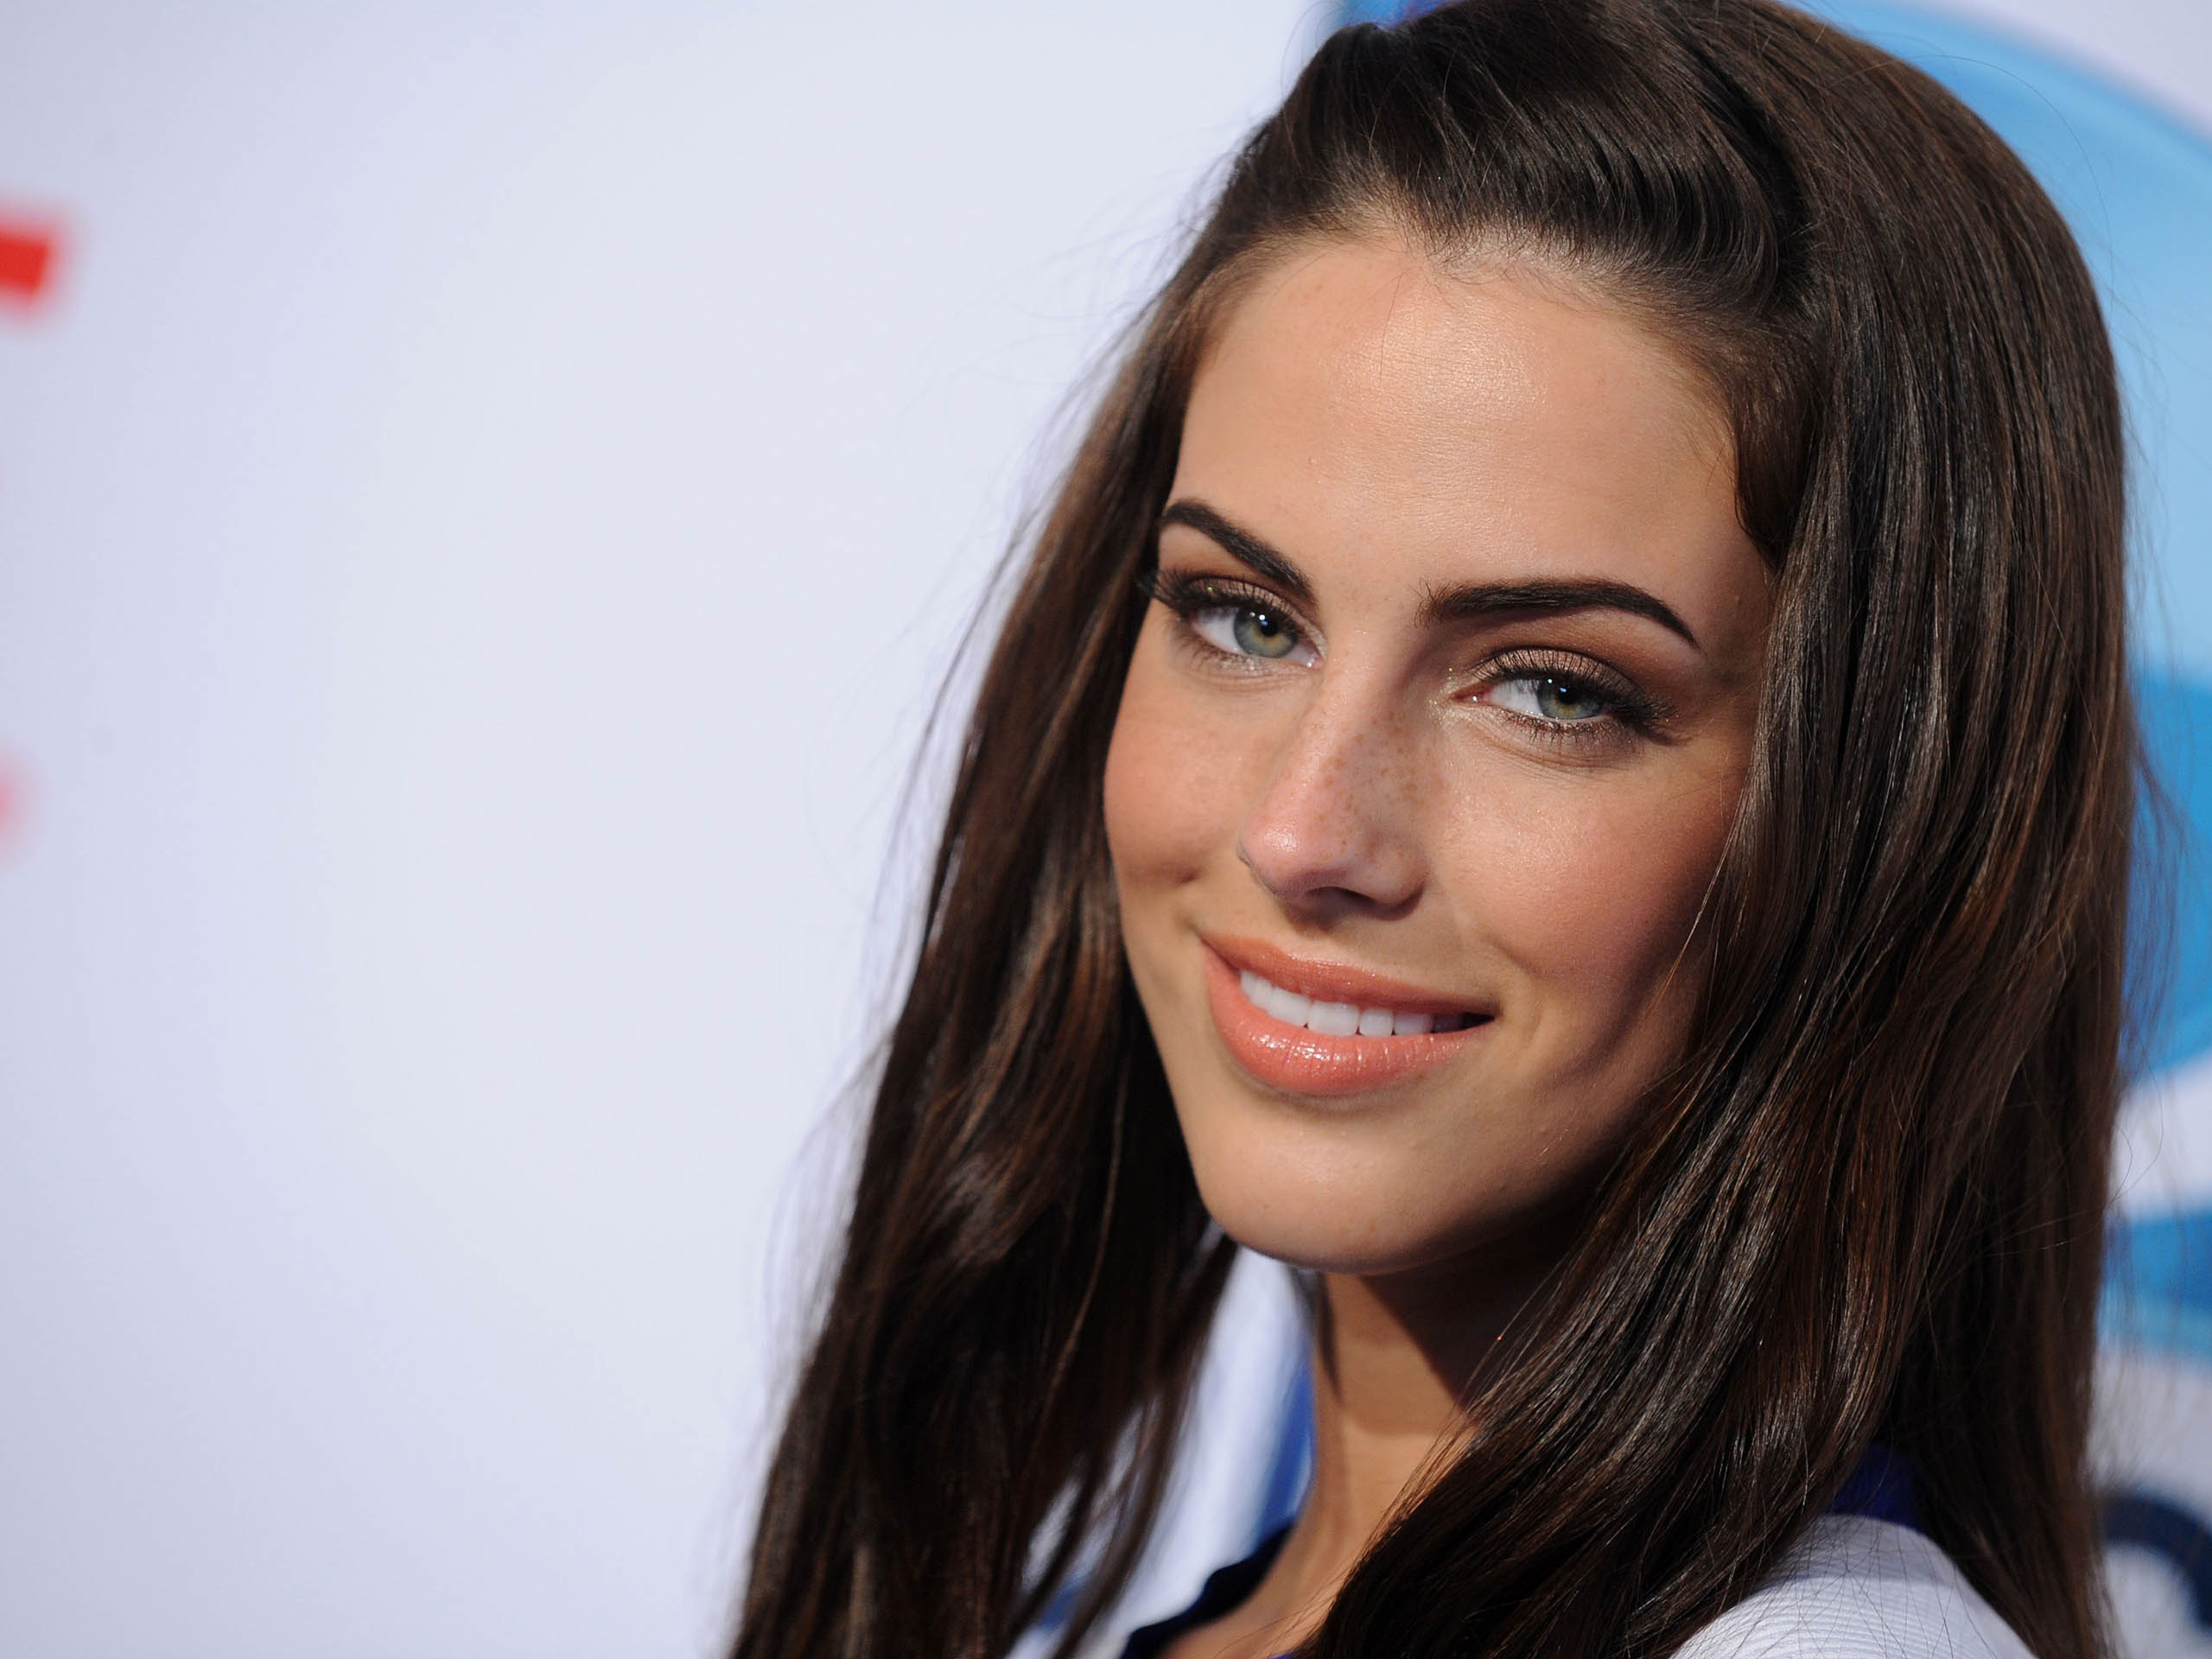 Brunette Jessica Lowndes on the blue background HD